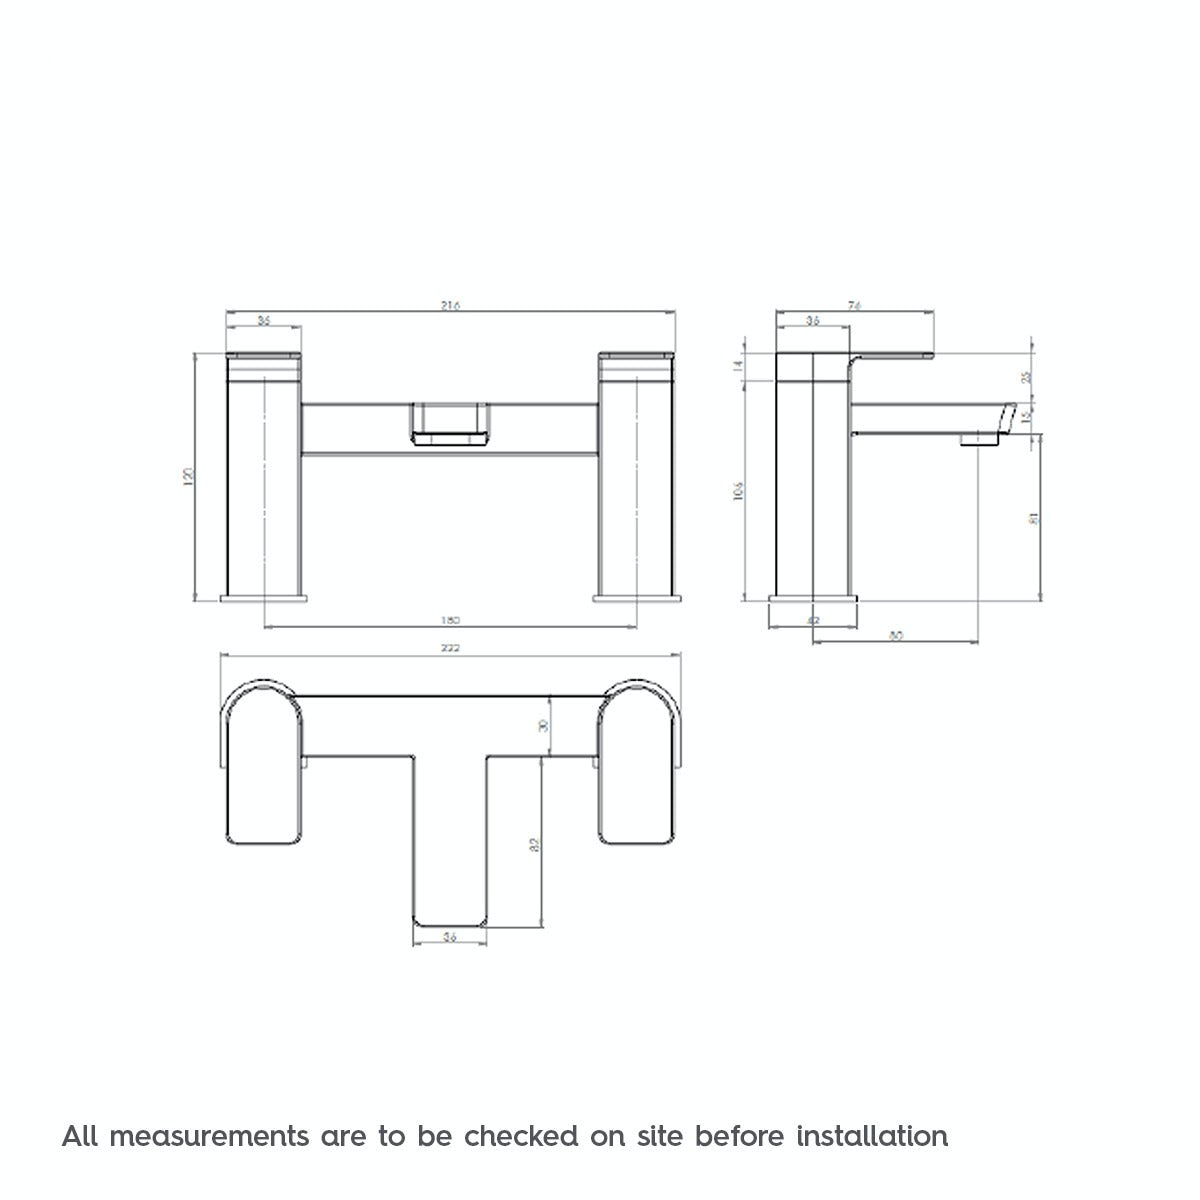 Dimensions for Mode Ellis bath filler tap